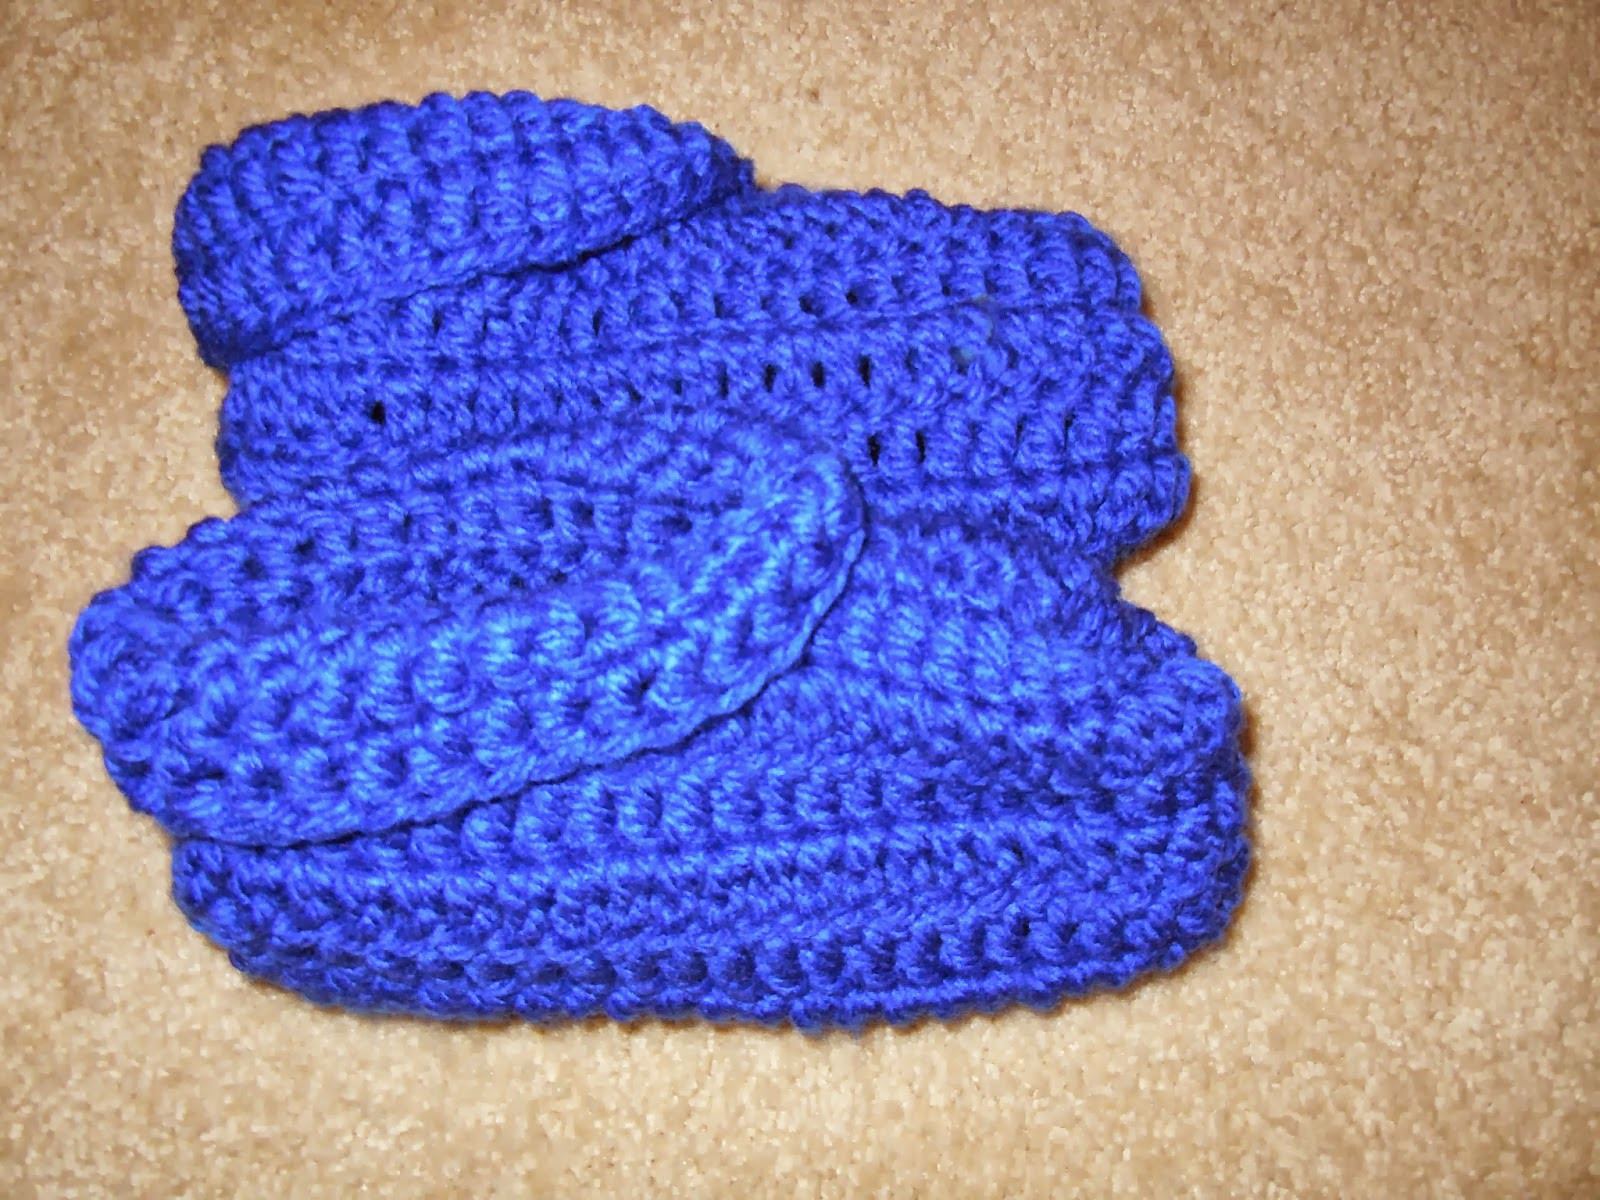 Crochet Slipper Pattern Luxury Craftdrawer Crafts Quick and Easy to Crochet Slippers Of Gorgeous 44 Pics Crochet Slipper Pattern